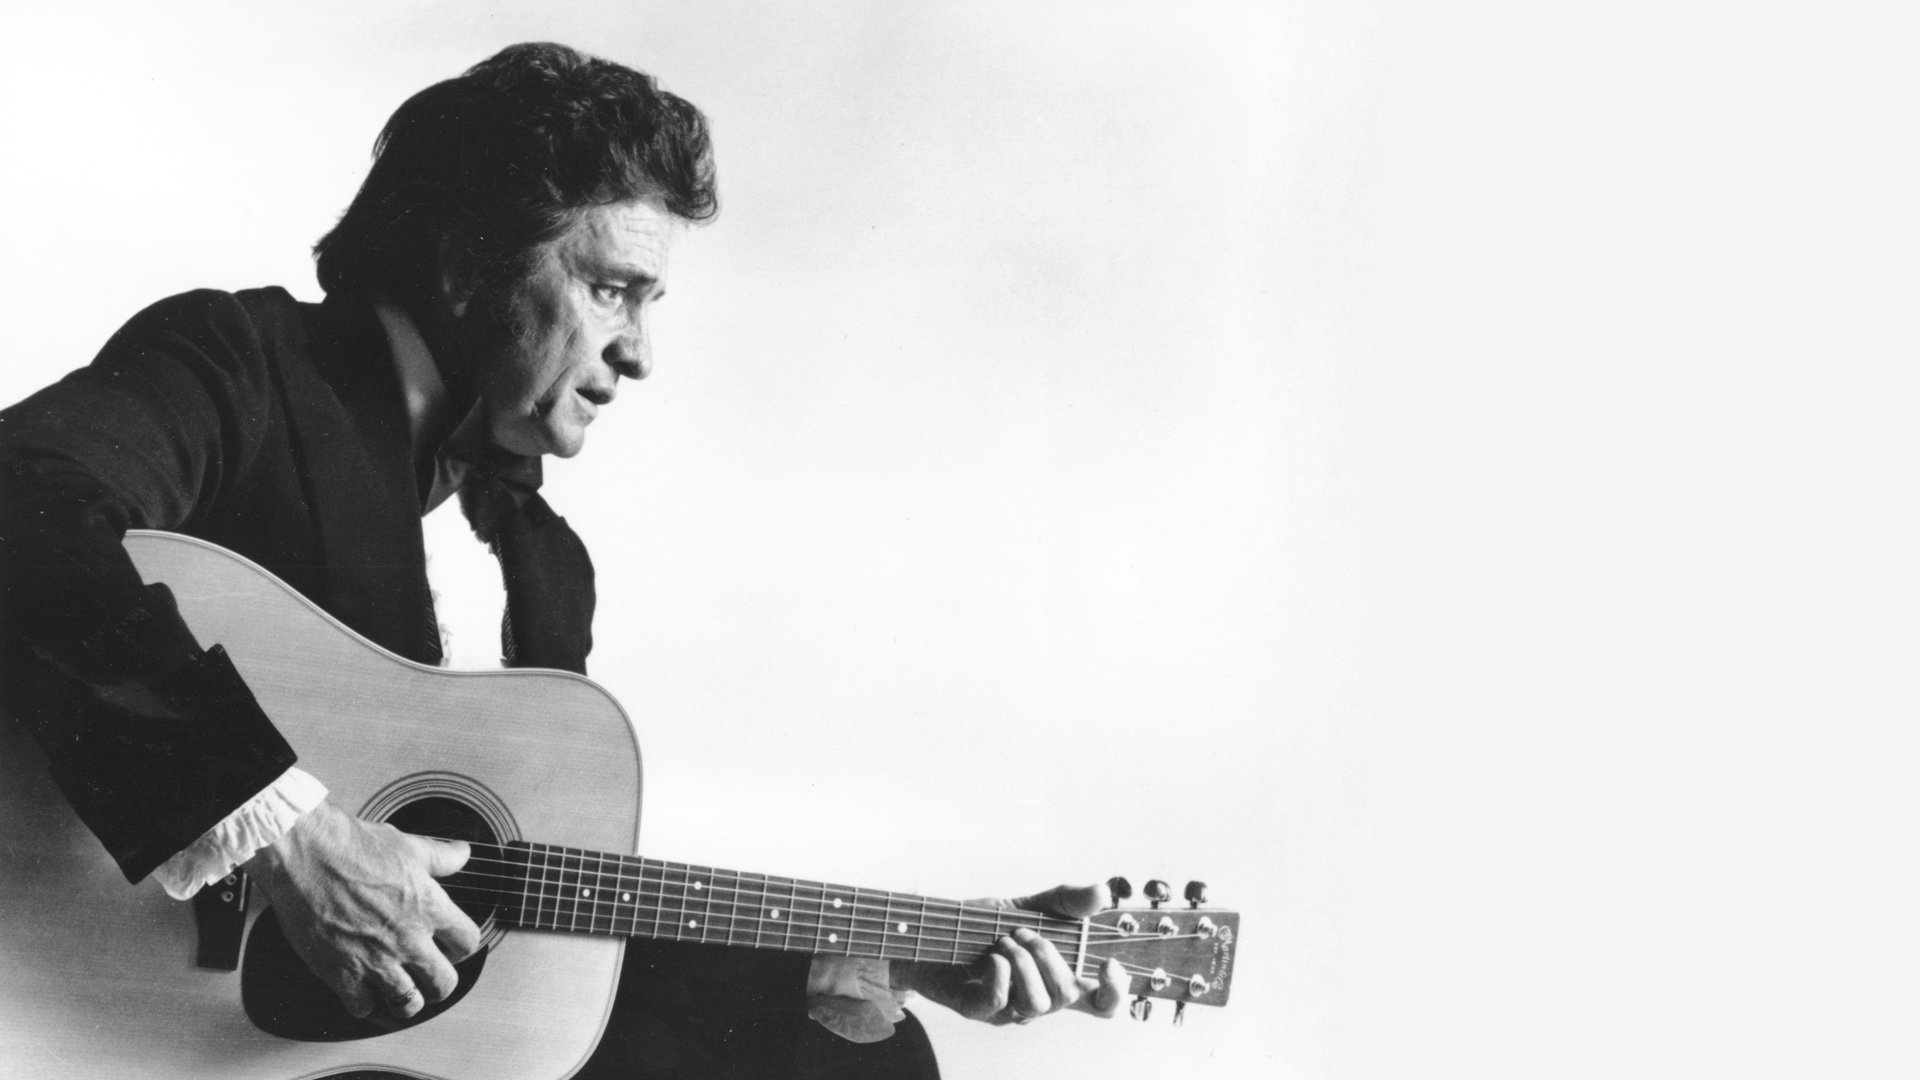 10 Johnny Cash Hd Wallpapers Background Images Wallpaper